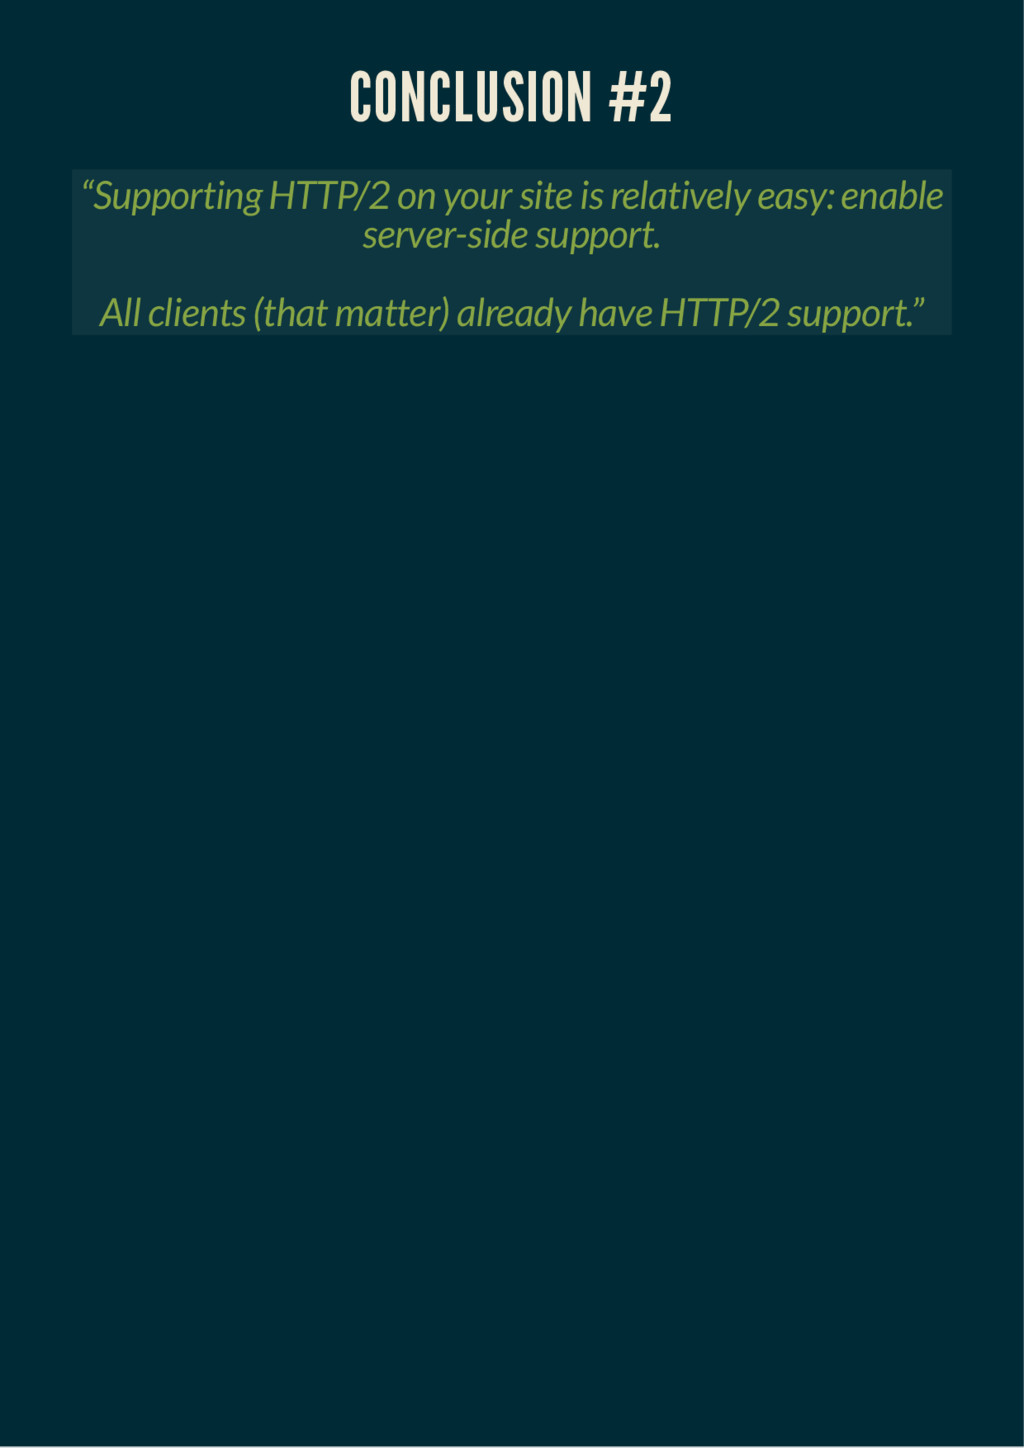 """CONCLUSION #2 CONCLUSION #2 """"Supporting HTTP/2 ..."""